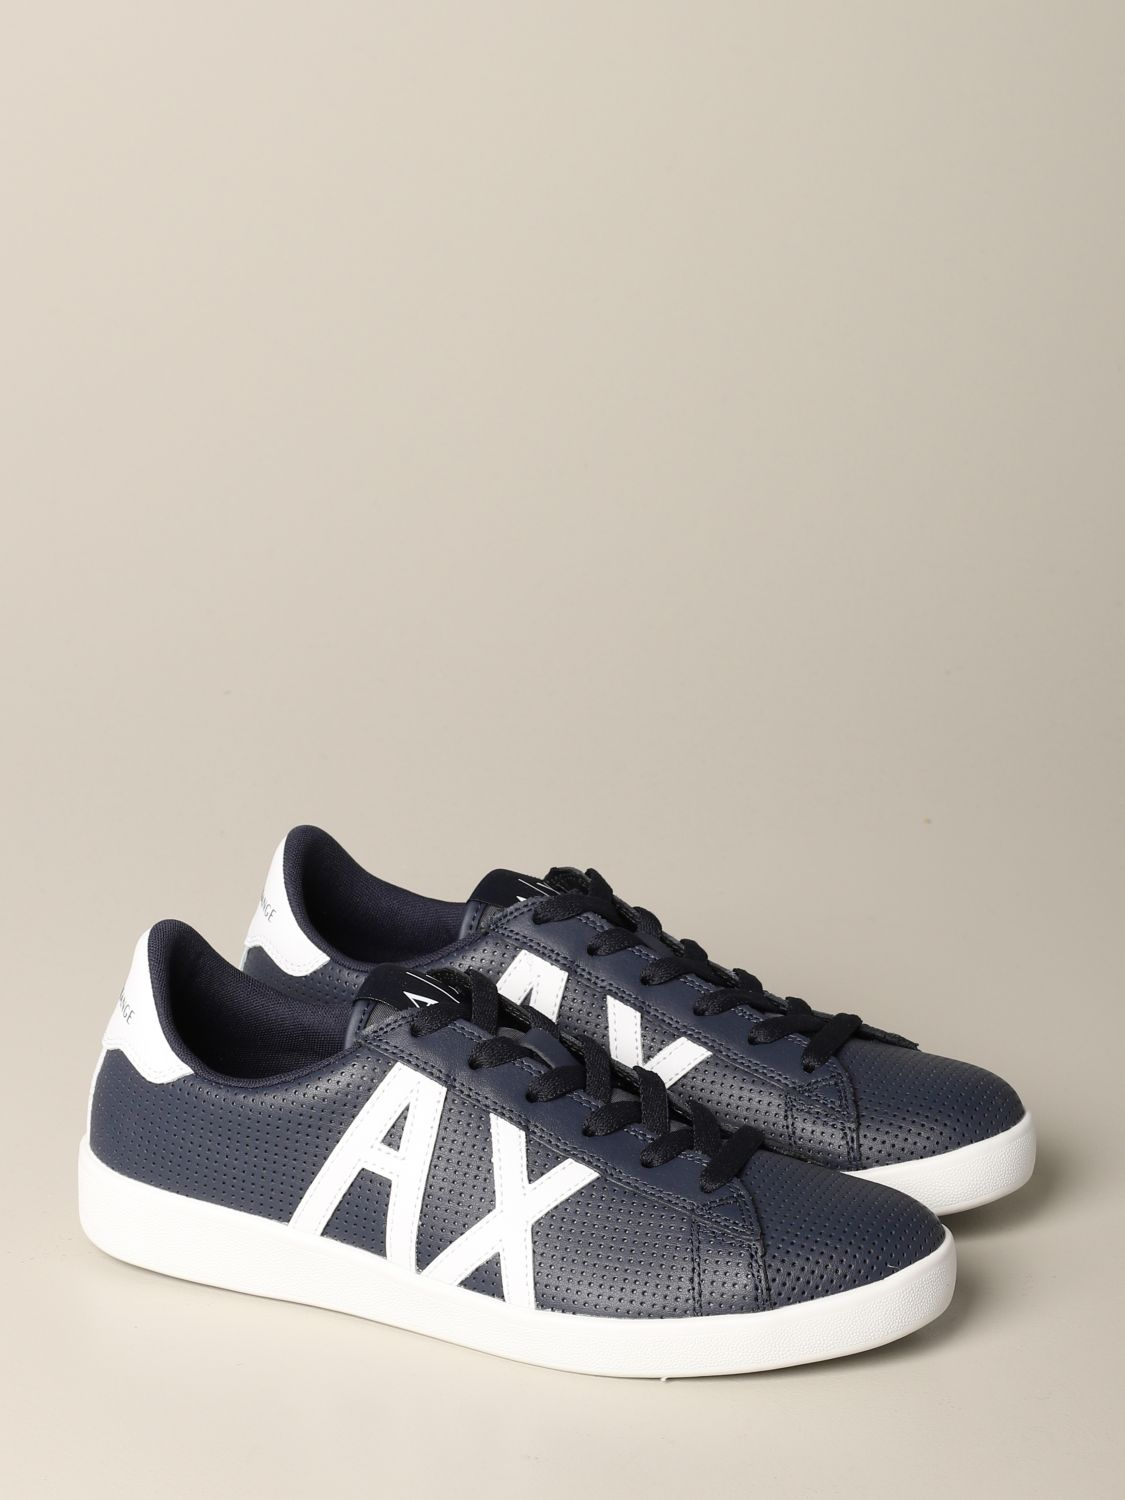 Sneakers Armani Exchange: Schuhe herren Armani Exchange blau 2